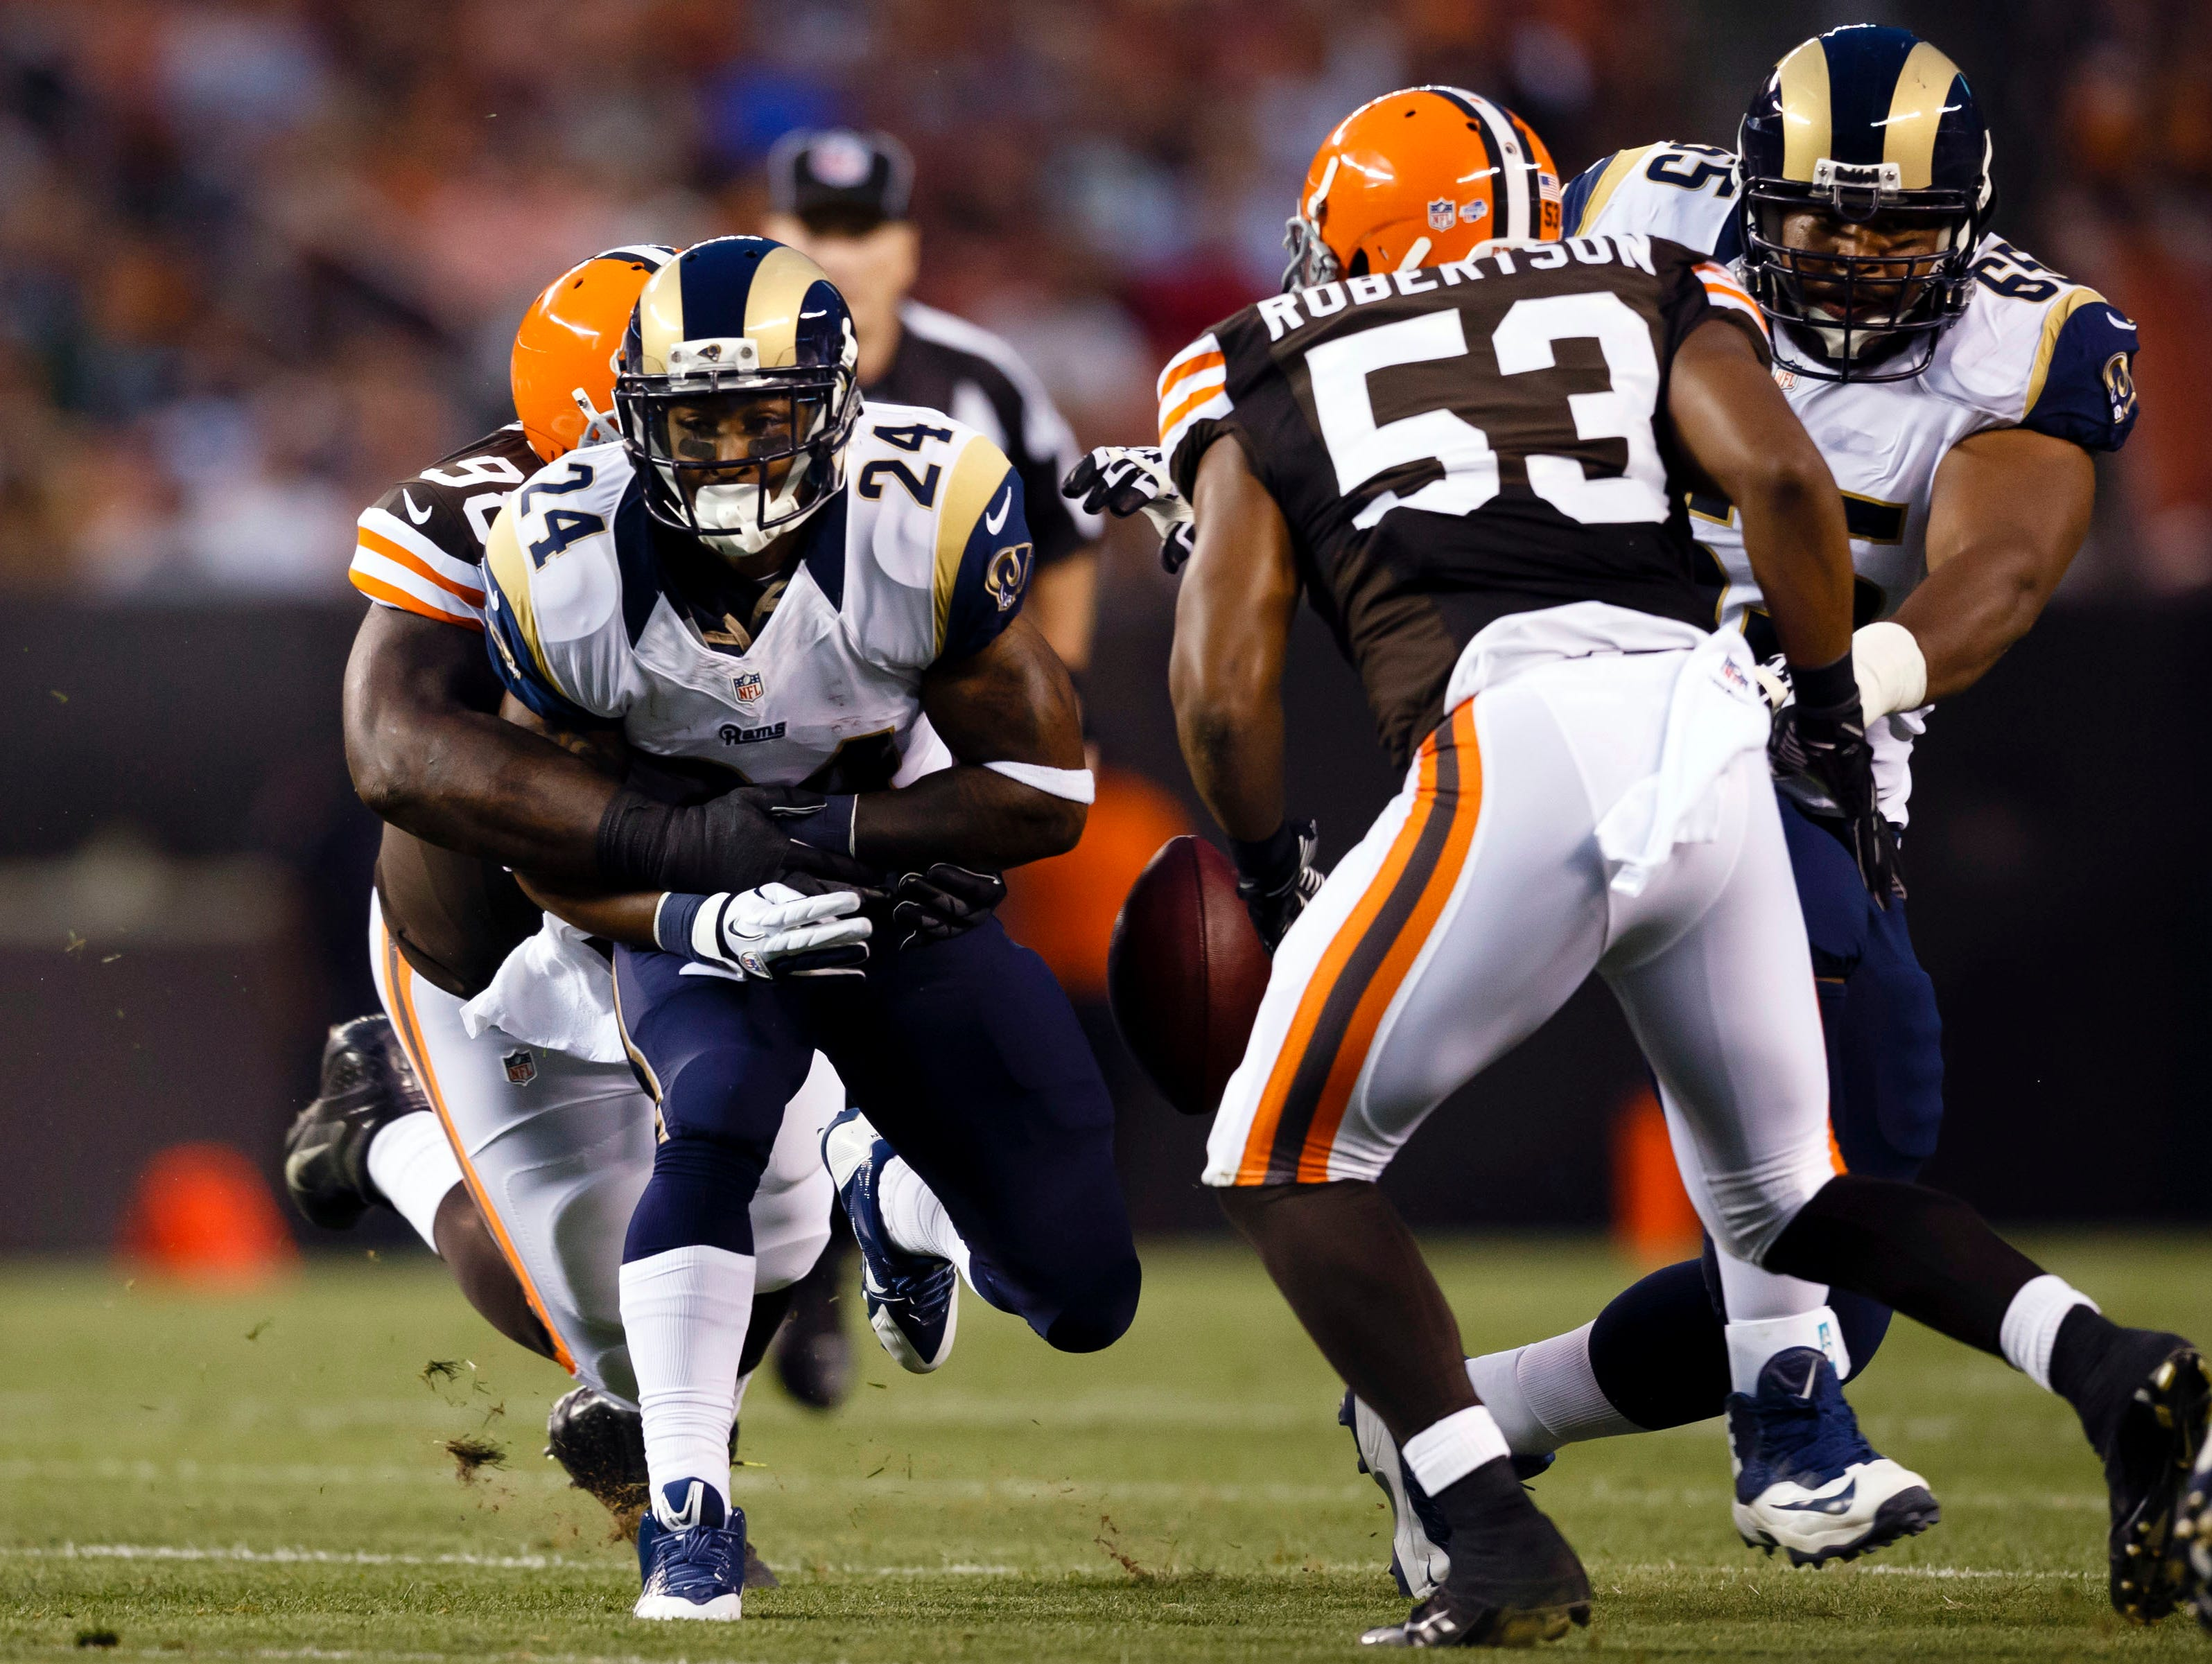 Cleveland Browns defensive tackle Phillip Taylor (98) tries to tackle St. Louis Rams running back Isaiah Pead (24) in the first half at FirstEnergy Stadium.